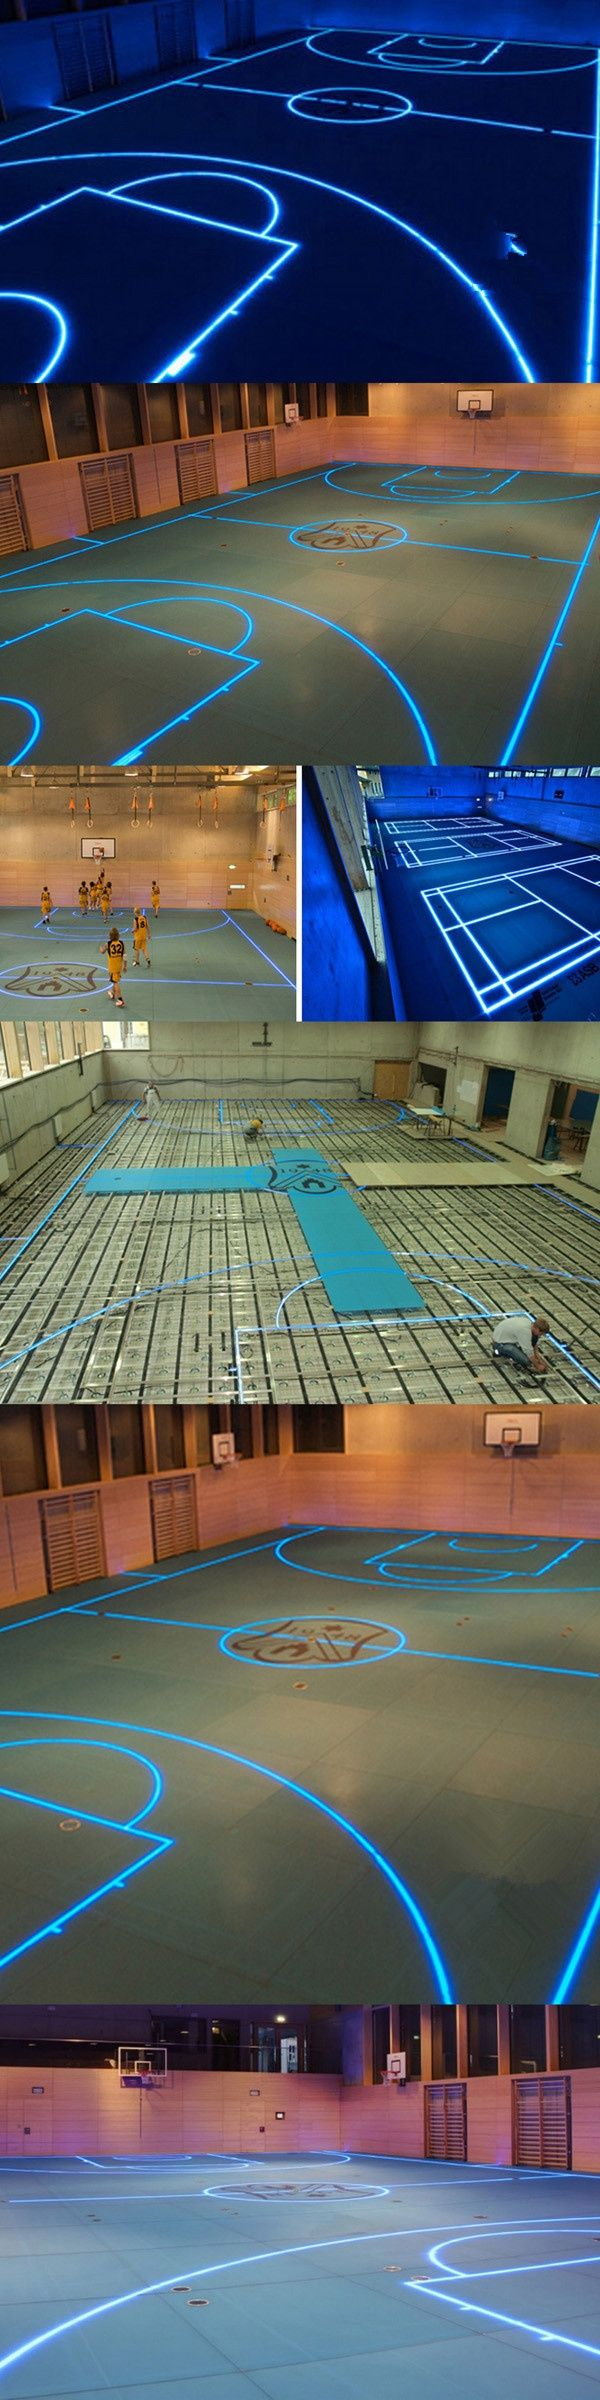 9 best indoor facilities images on pinterest d1 indoor for Indoor basketball court installation